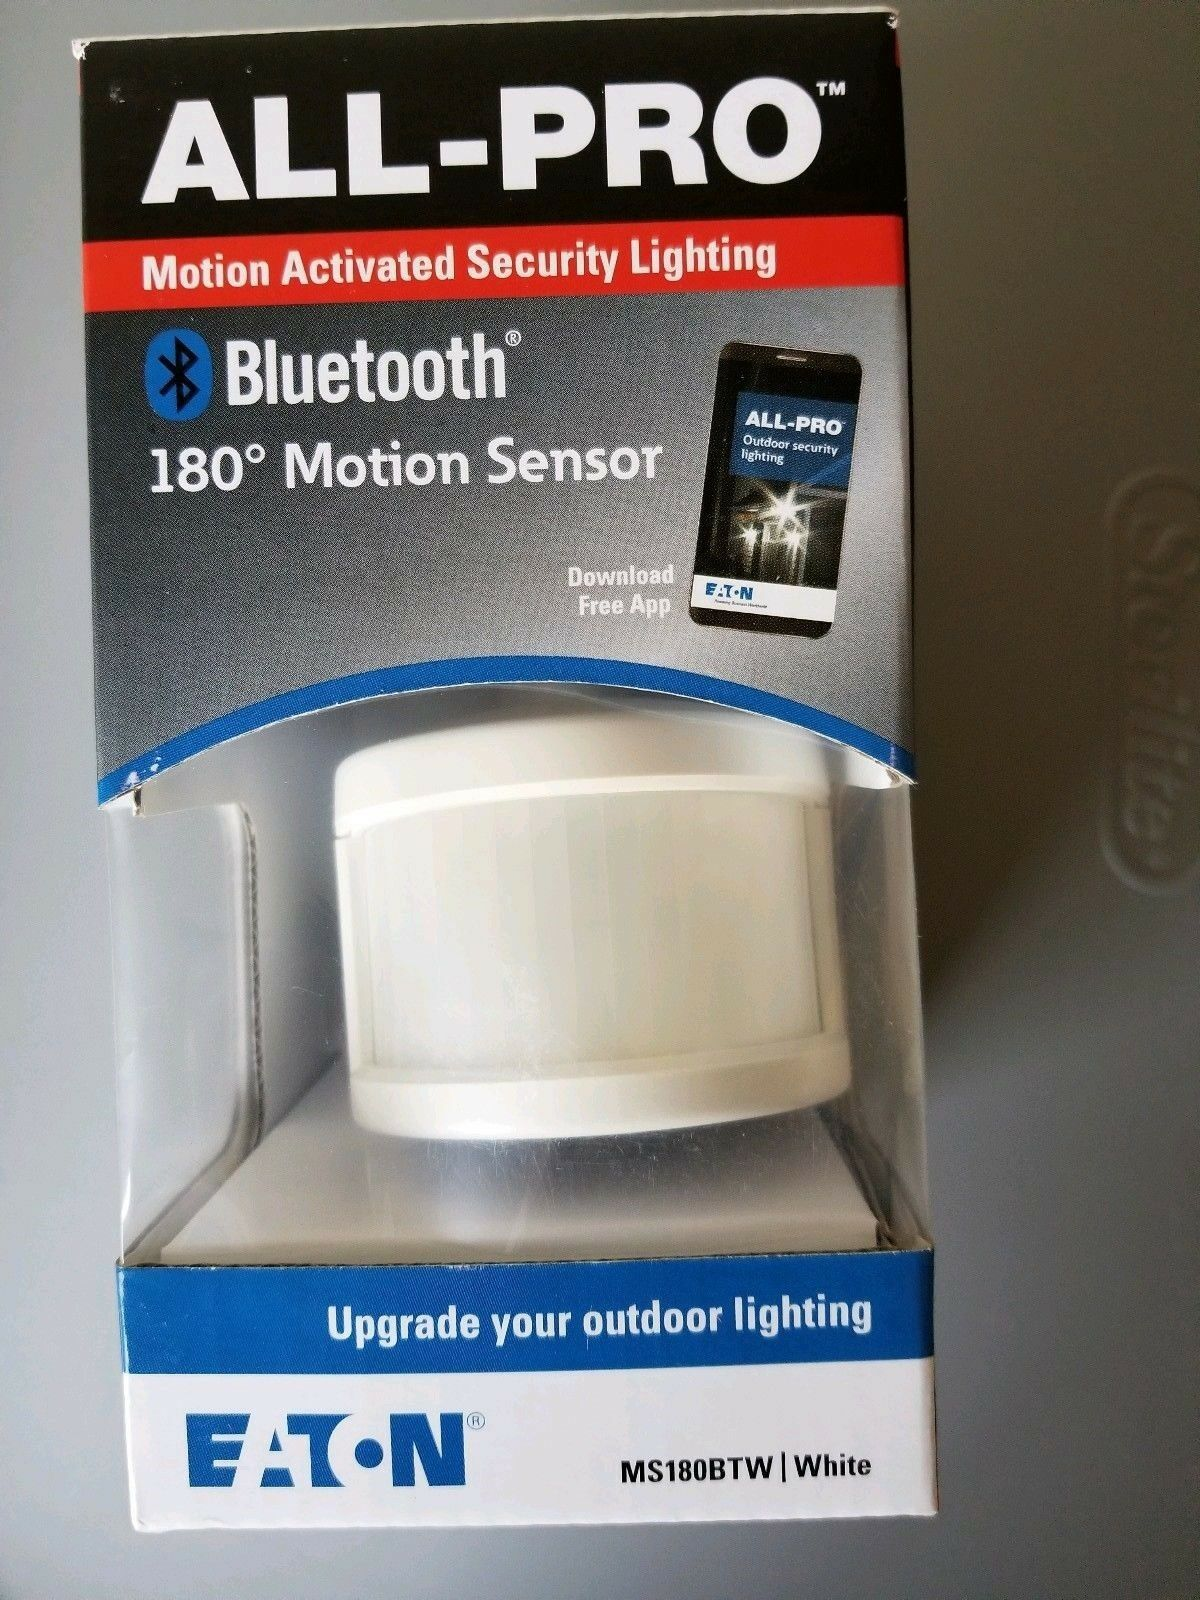 All-Pro Bluetooth Enabled Eaton White 180 Motion Sensor Outd